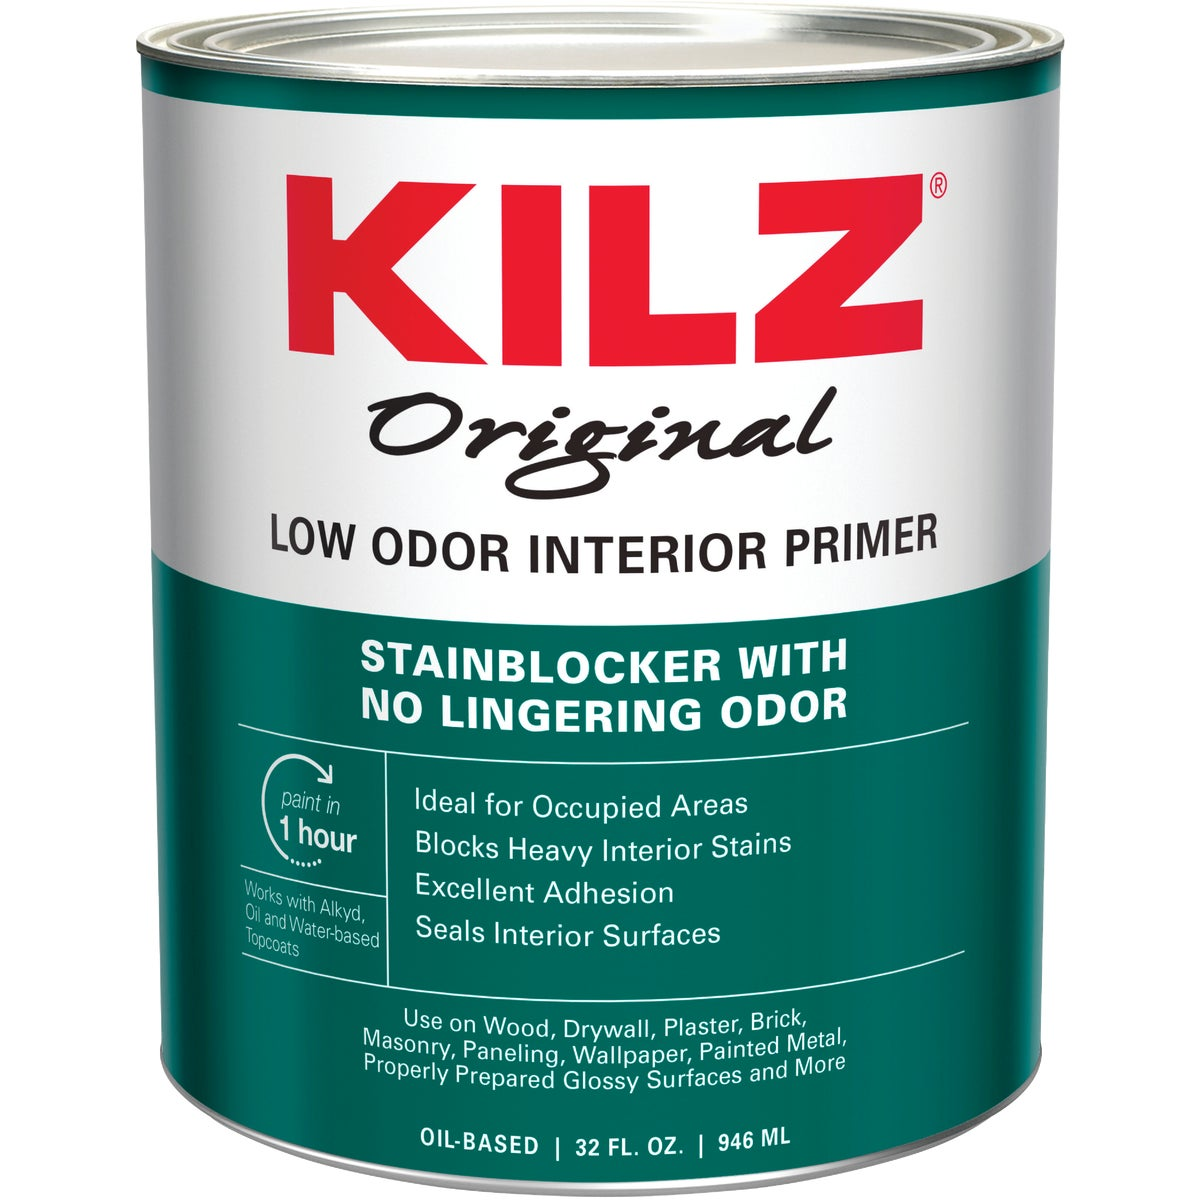 KILZ INT ODORLESS PRIMER - 10042 by Masterchem